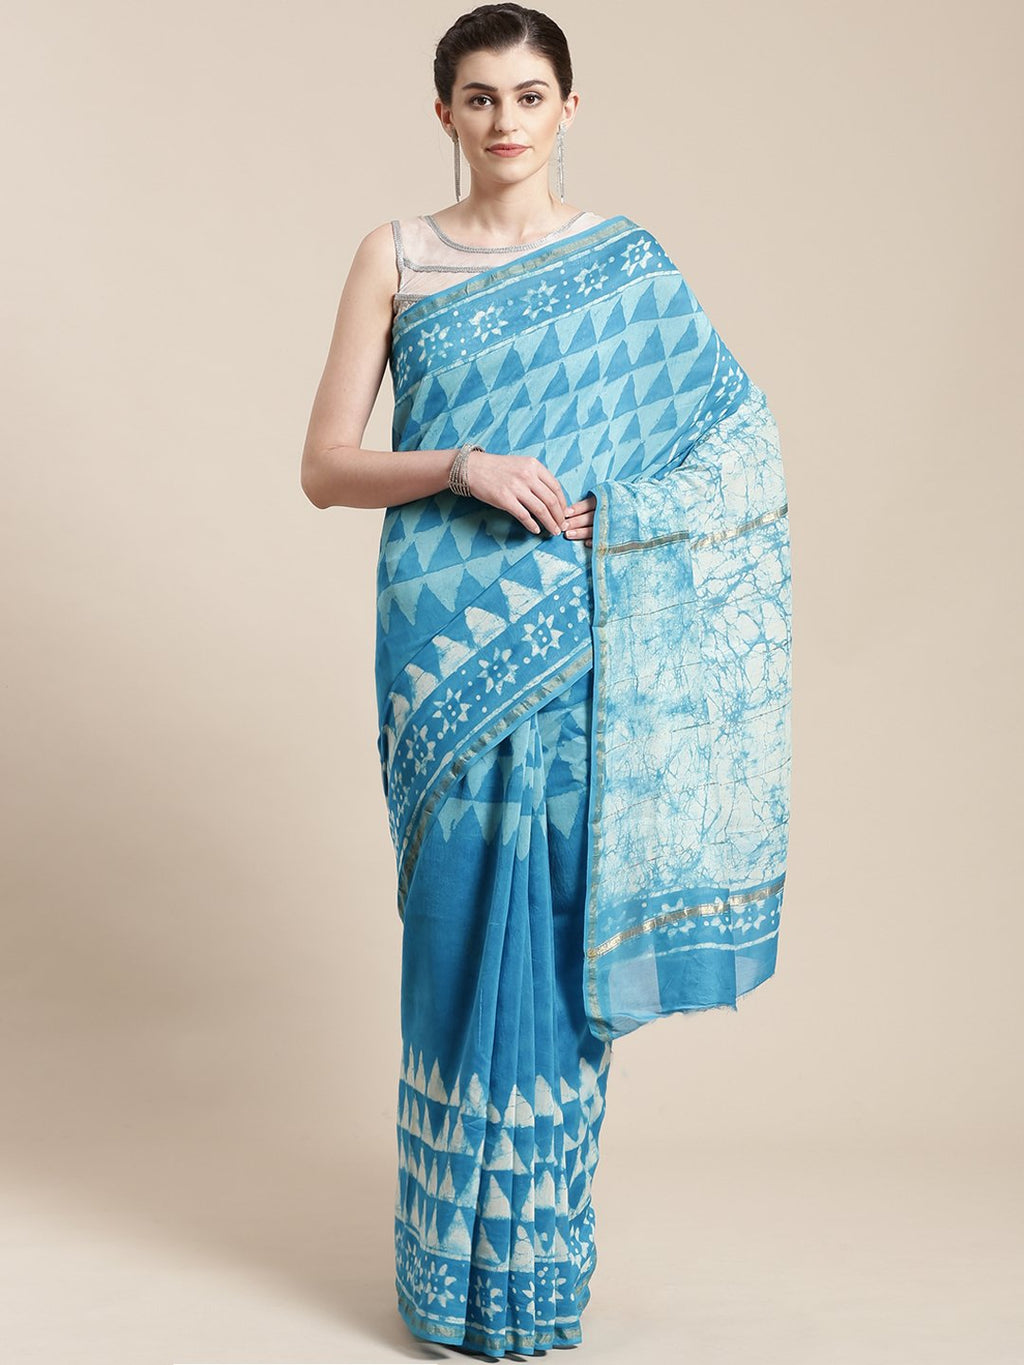 Blue & Off-White Handwoven Handblock Print Bagru Saree-Saree-Kalakari India-BHKPSA0116-Cotton, Geographical Indication, Hand Blocks, Hand Crafted, Heritage Prints, Sanganeri, Sarees, Sustainable Fabrics-[Linen,Ethnic,wear,Fashionista,Handloom,Handicraft,Indigo,blockprint,block,print,Cotton,Chanderi,Blue, latest,classy,party,bollywood,trendy,summer,style,traditional,formal,elegant,unique,style,hand,block,print, dabu,booti,gift,present,glamorous,affordable,collectible,Sari,Saree,printed, holi, Diw